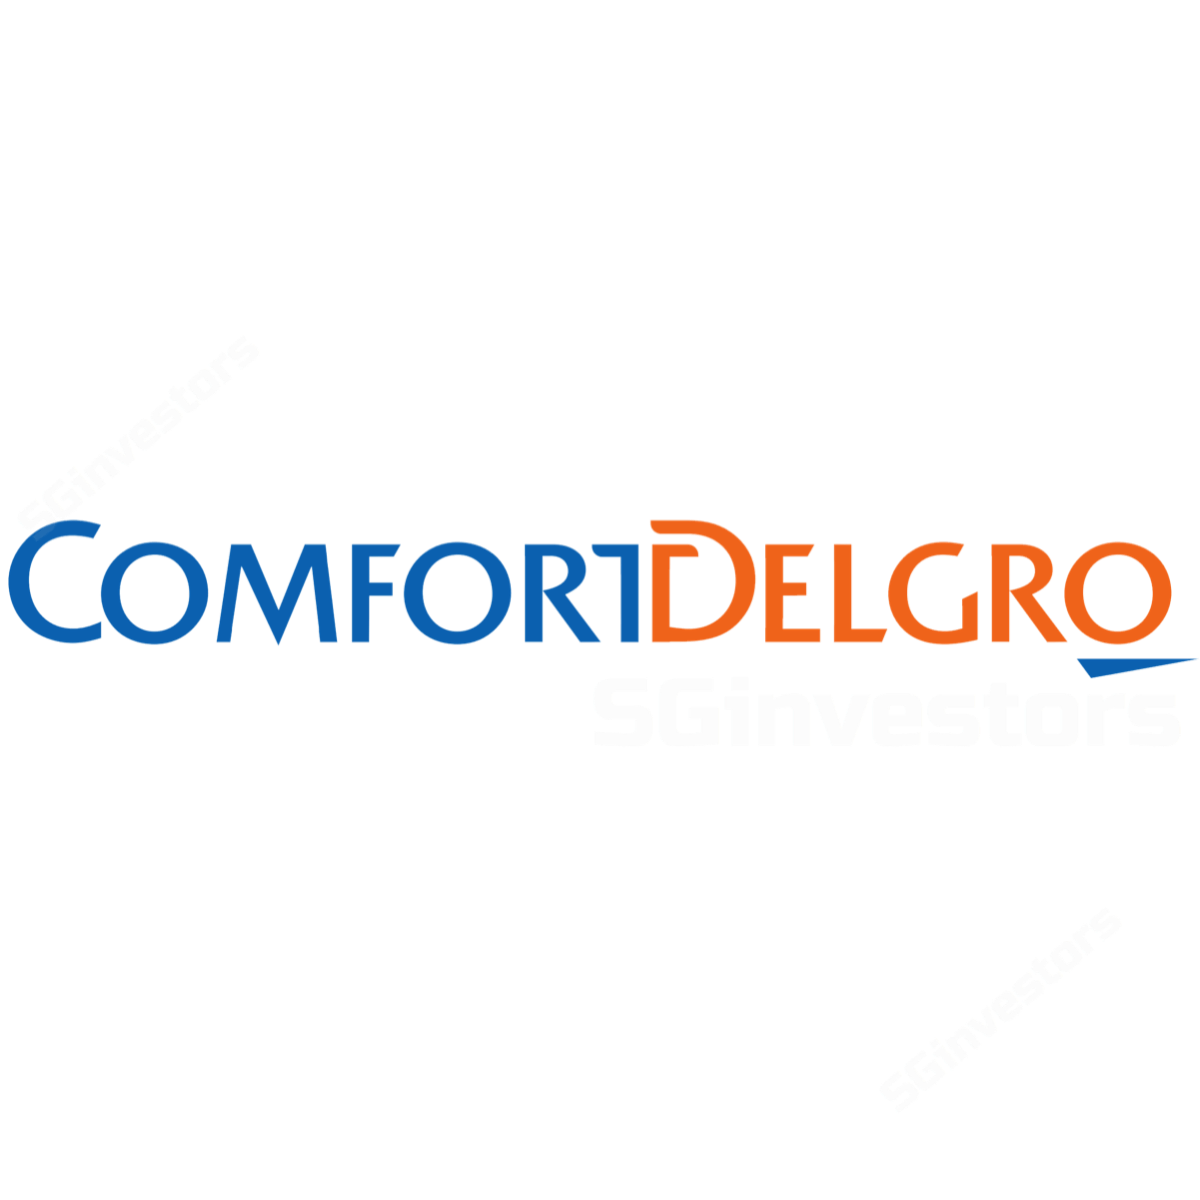 ComfortDelGro (CD SP) - Maybank Kim Eng 2018-03-09: Potential Positive Developments